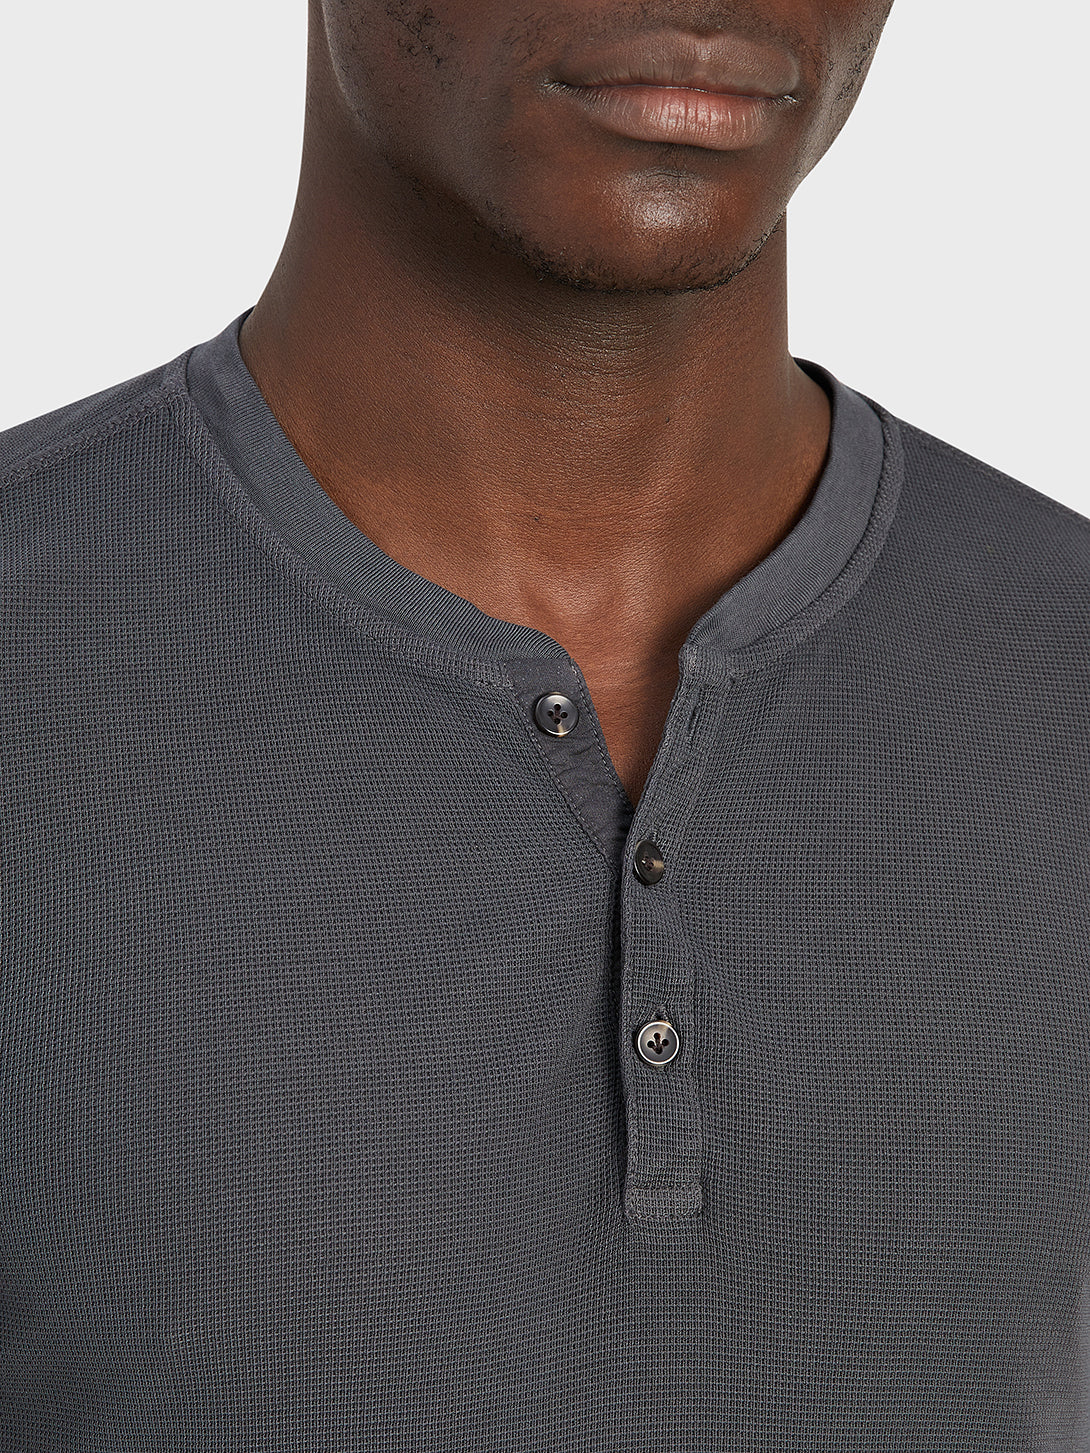 ONS Clothing Men's COURT WAFFLE HENLEY Pre-shrunk Cotton in CHARCOAL